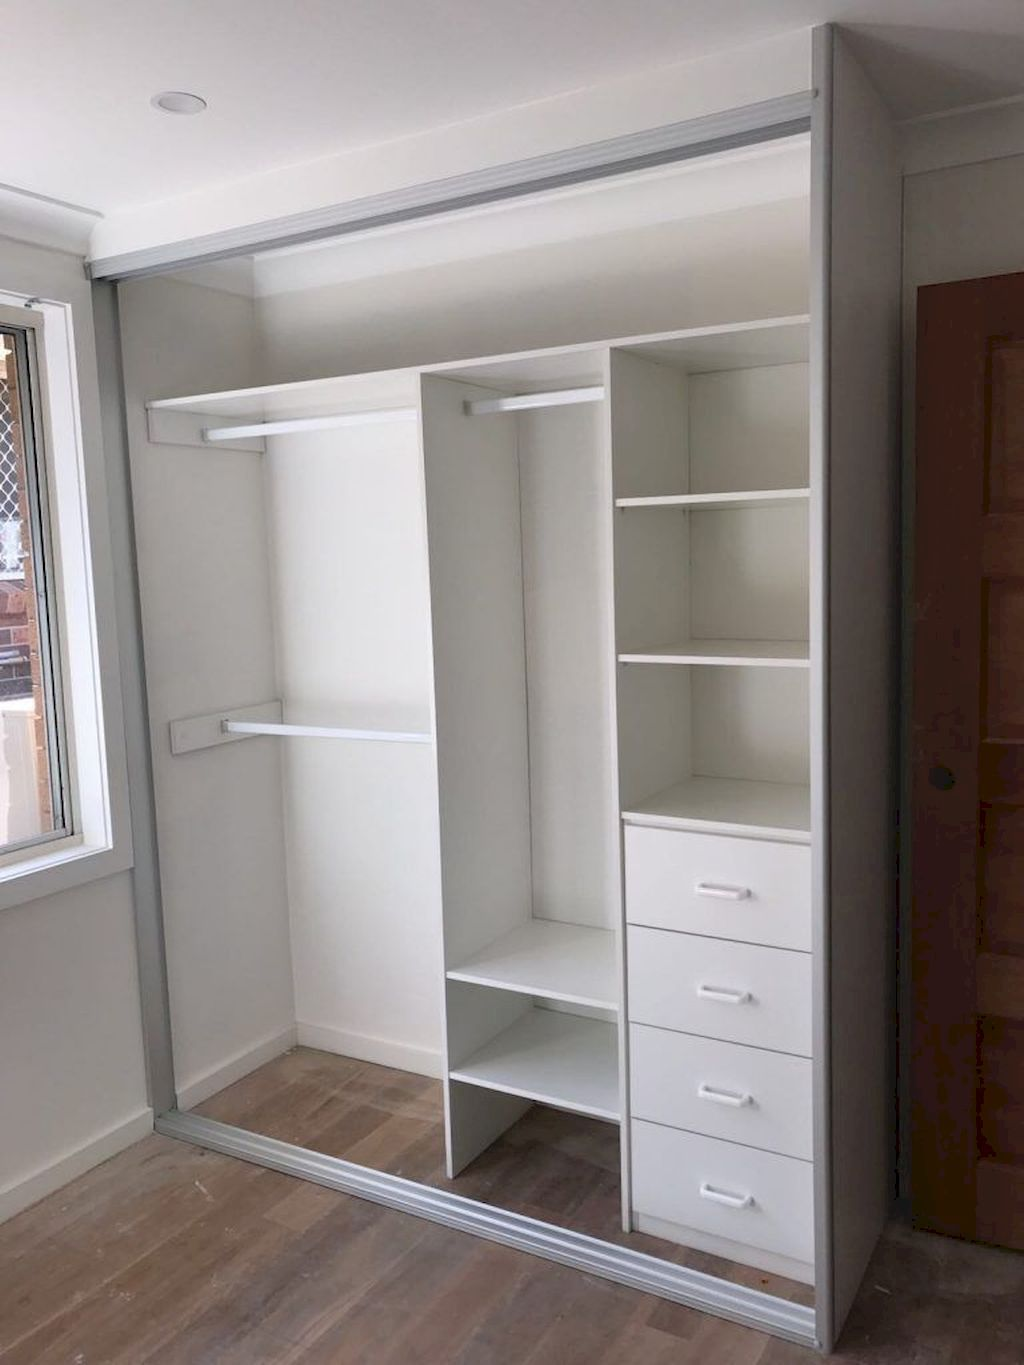 Miraculous Your House Saving Software For Your Clothes Build A Closet Cupboard Design Closet Layout